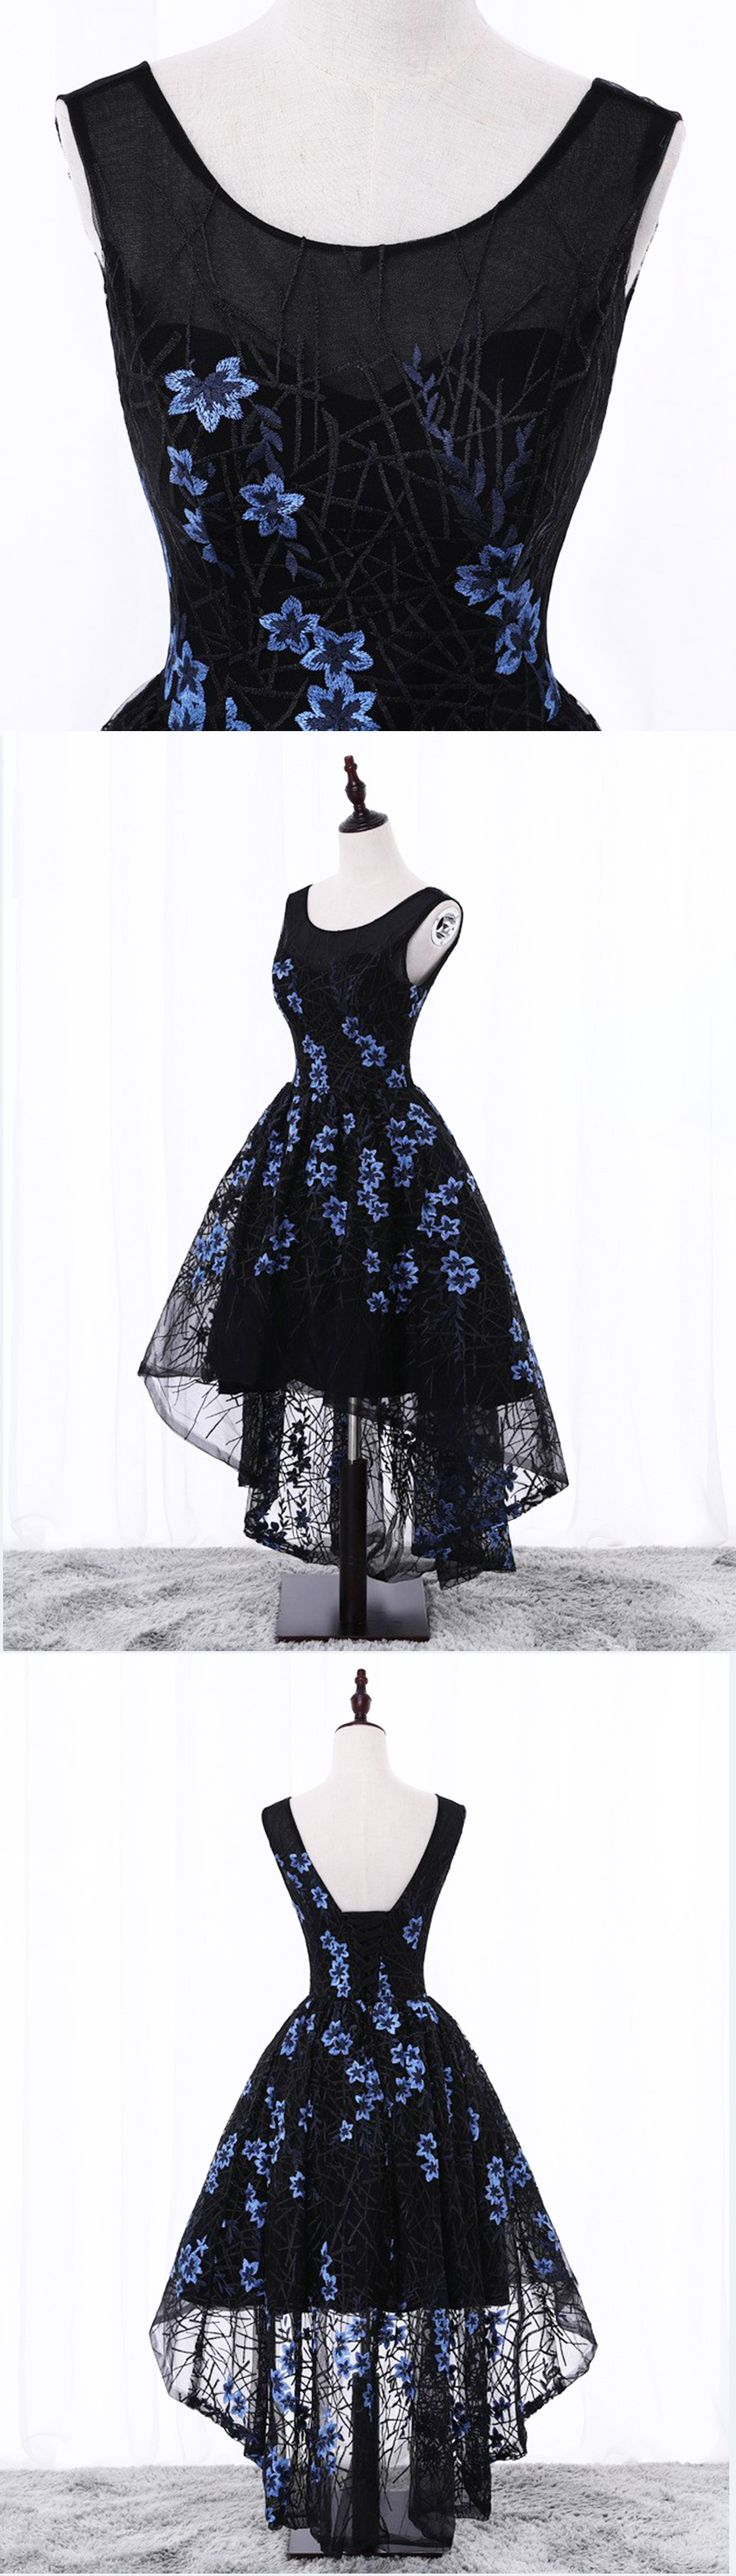 Black lace high low embroidery prom dress, black party dress #prom #dress #promdress